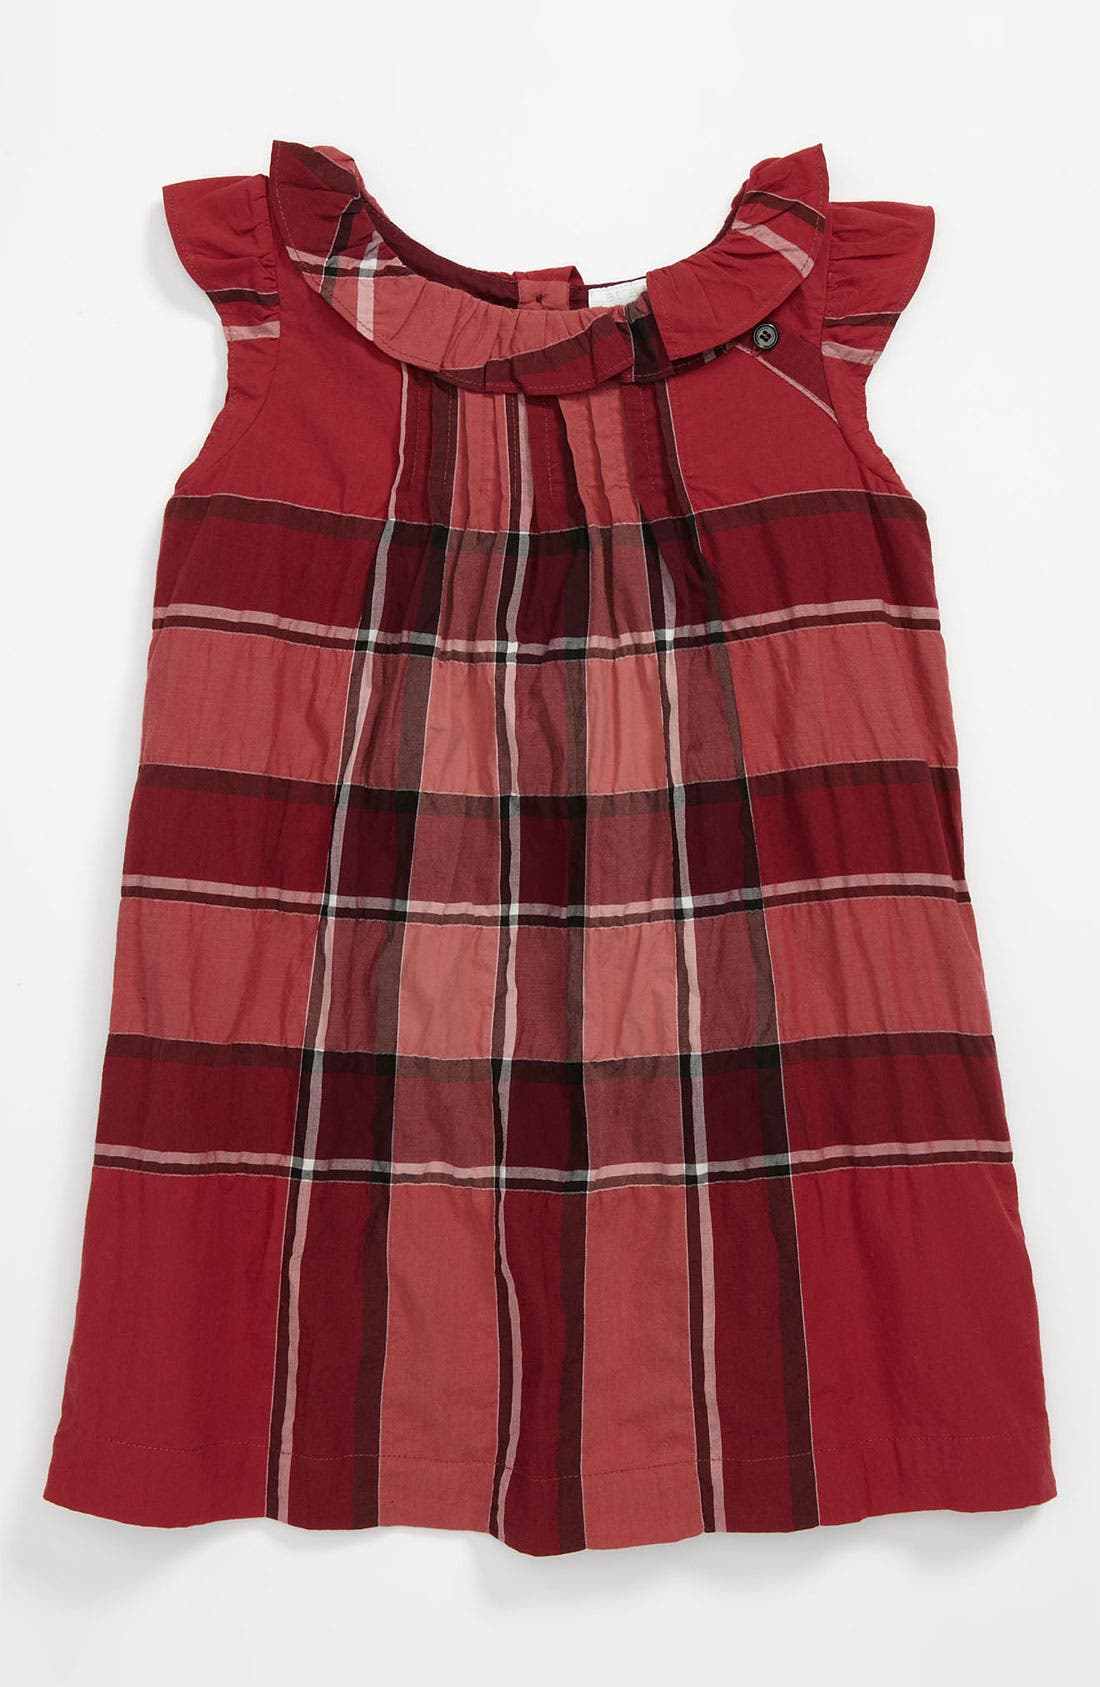 Main Image - Burberry 'Olly' Check Print Dress (Toddler)